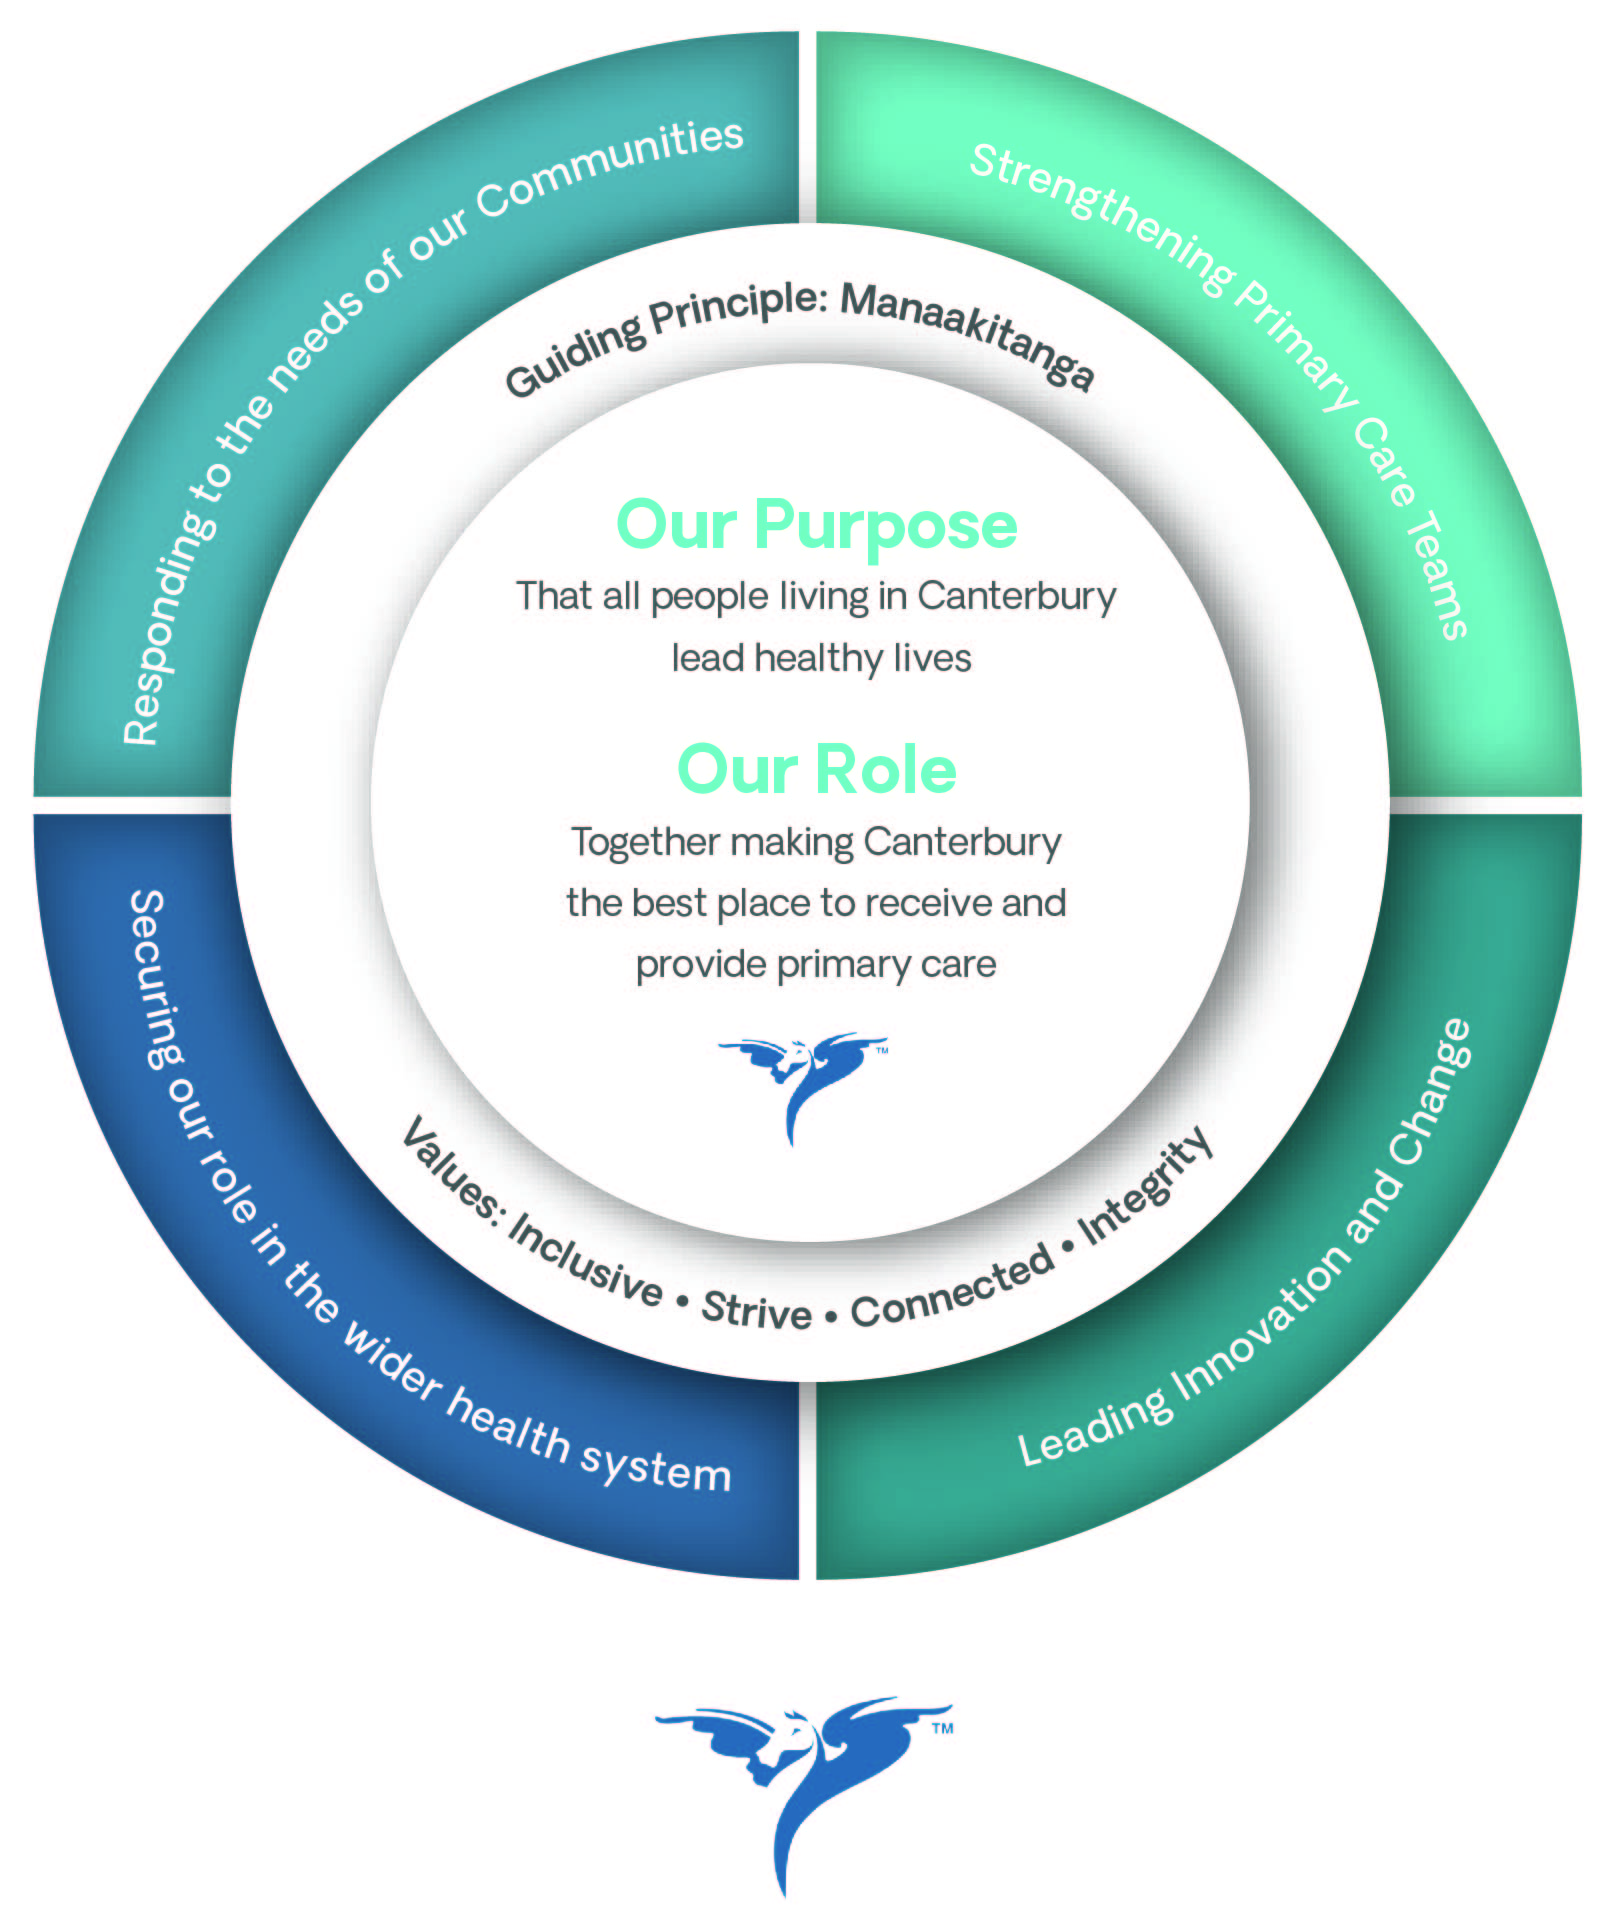 Our Purpose and Role